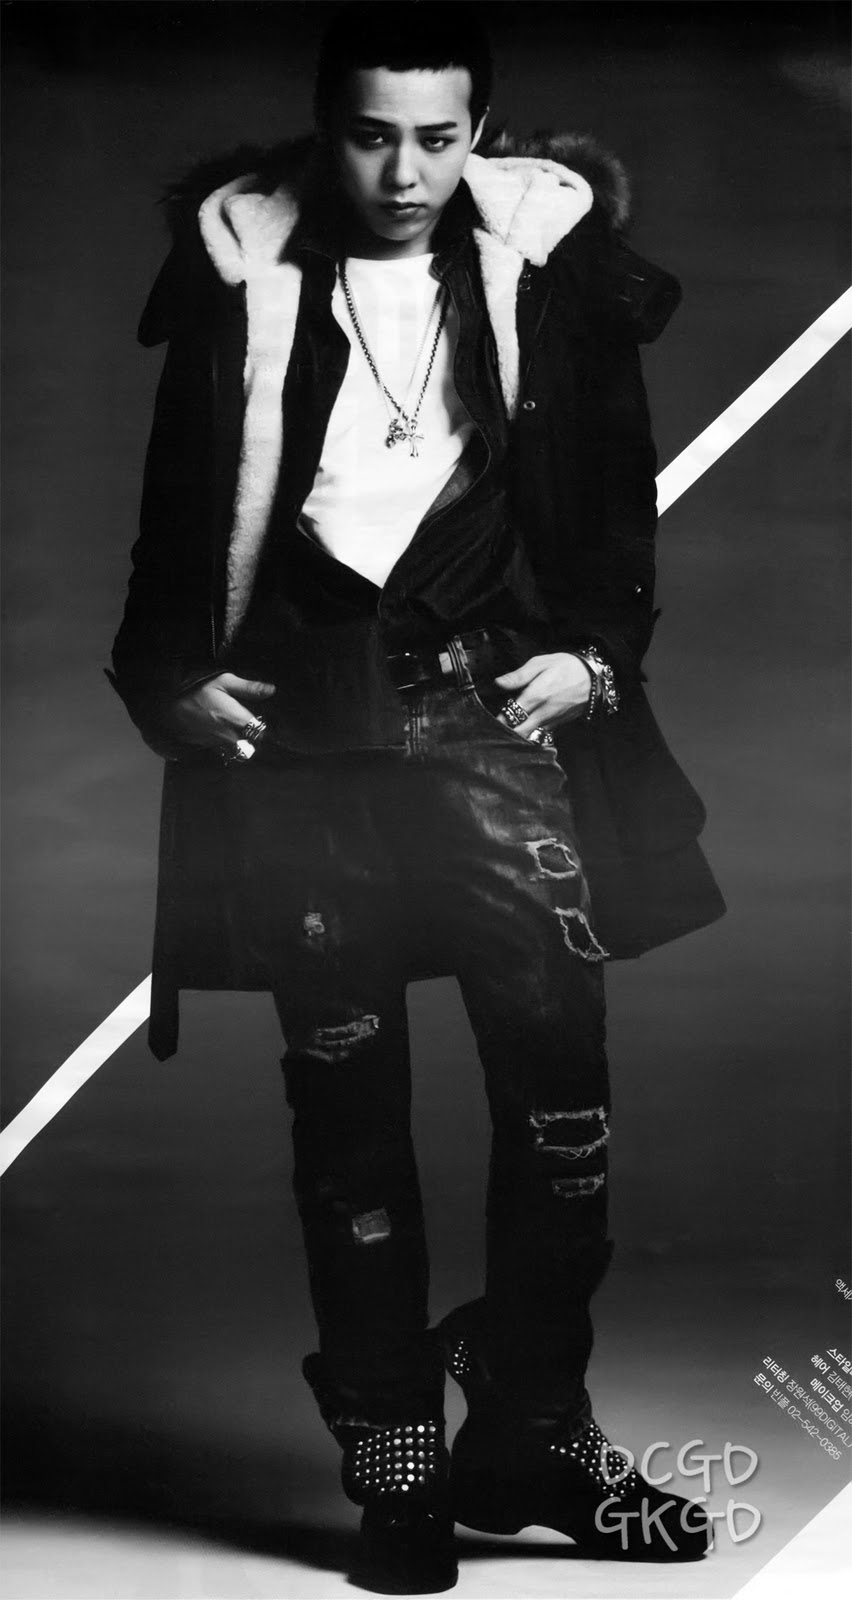 GDragon's Imagins Gdragon-1st-look-magazine-scans_097